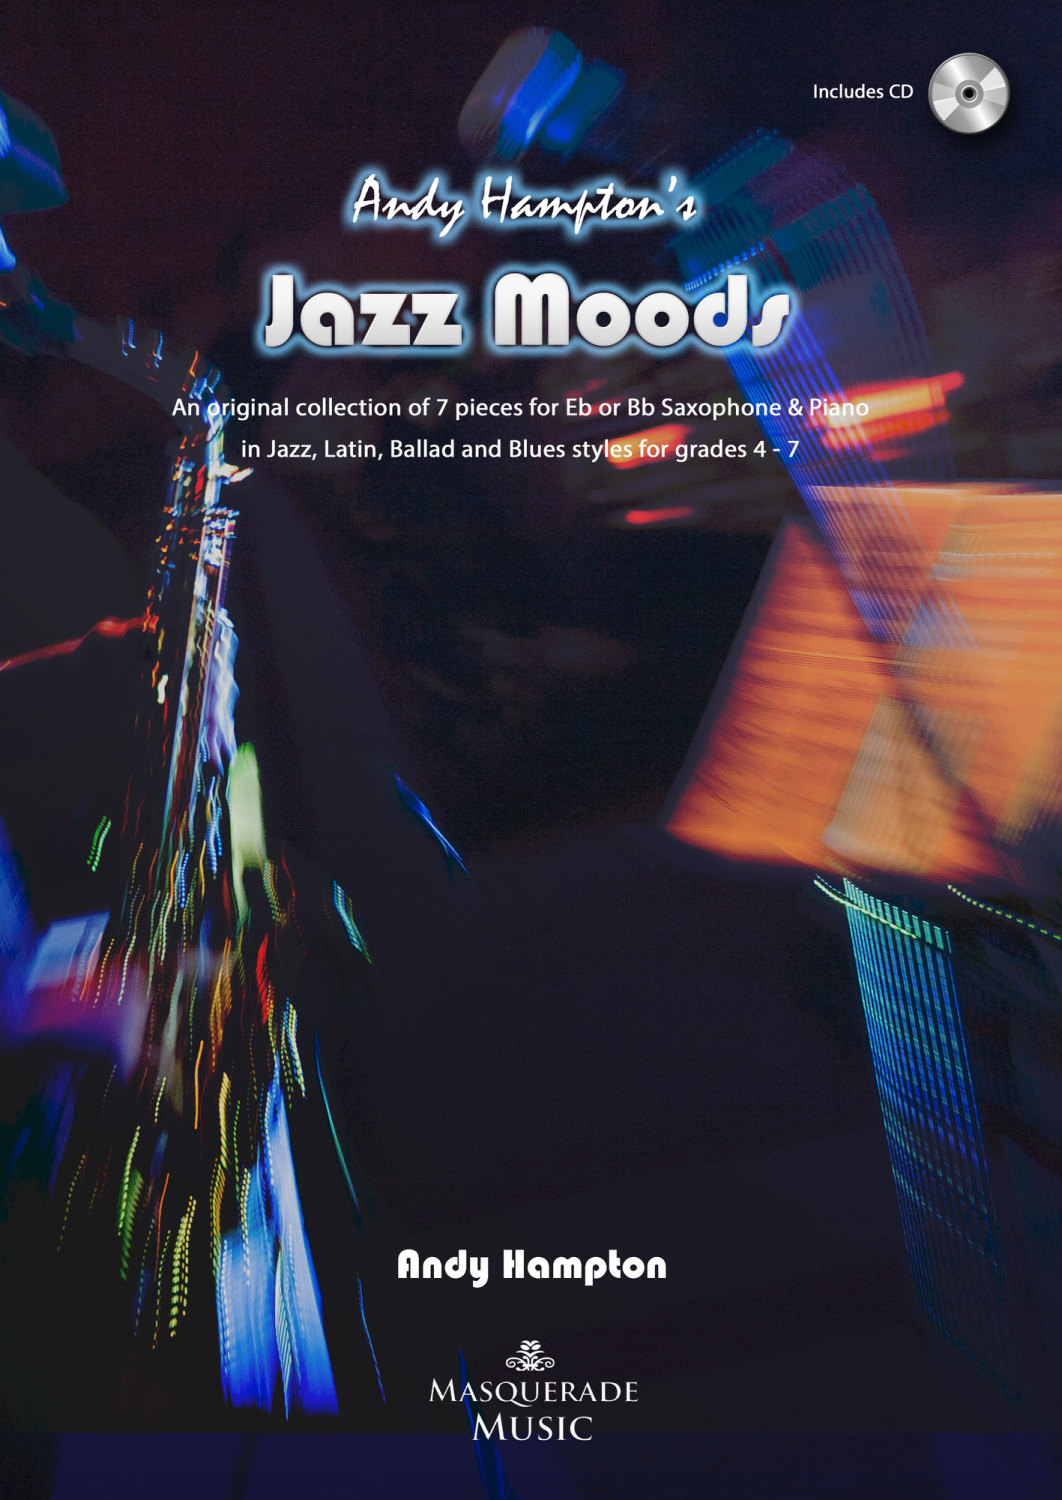 Jazz Moods (Eb/Bb Sax & Piano collection).